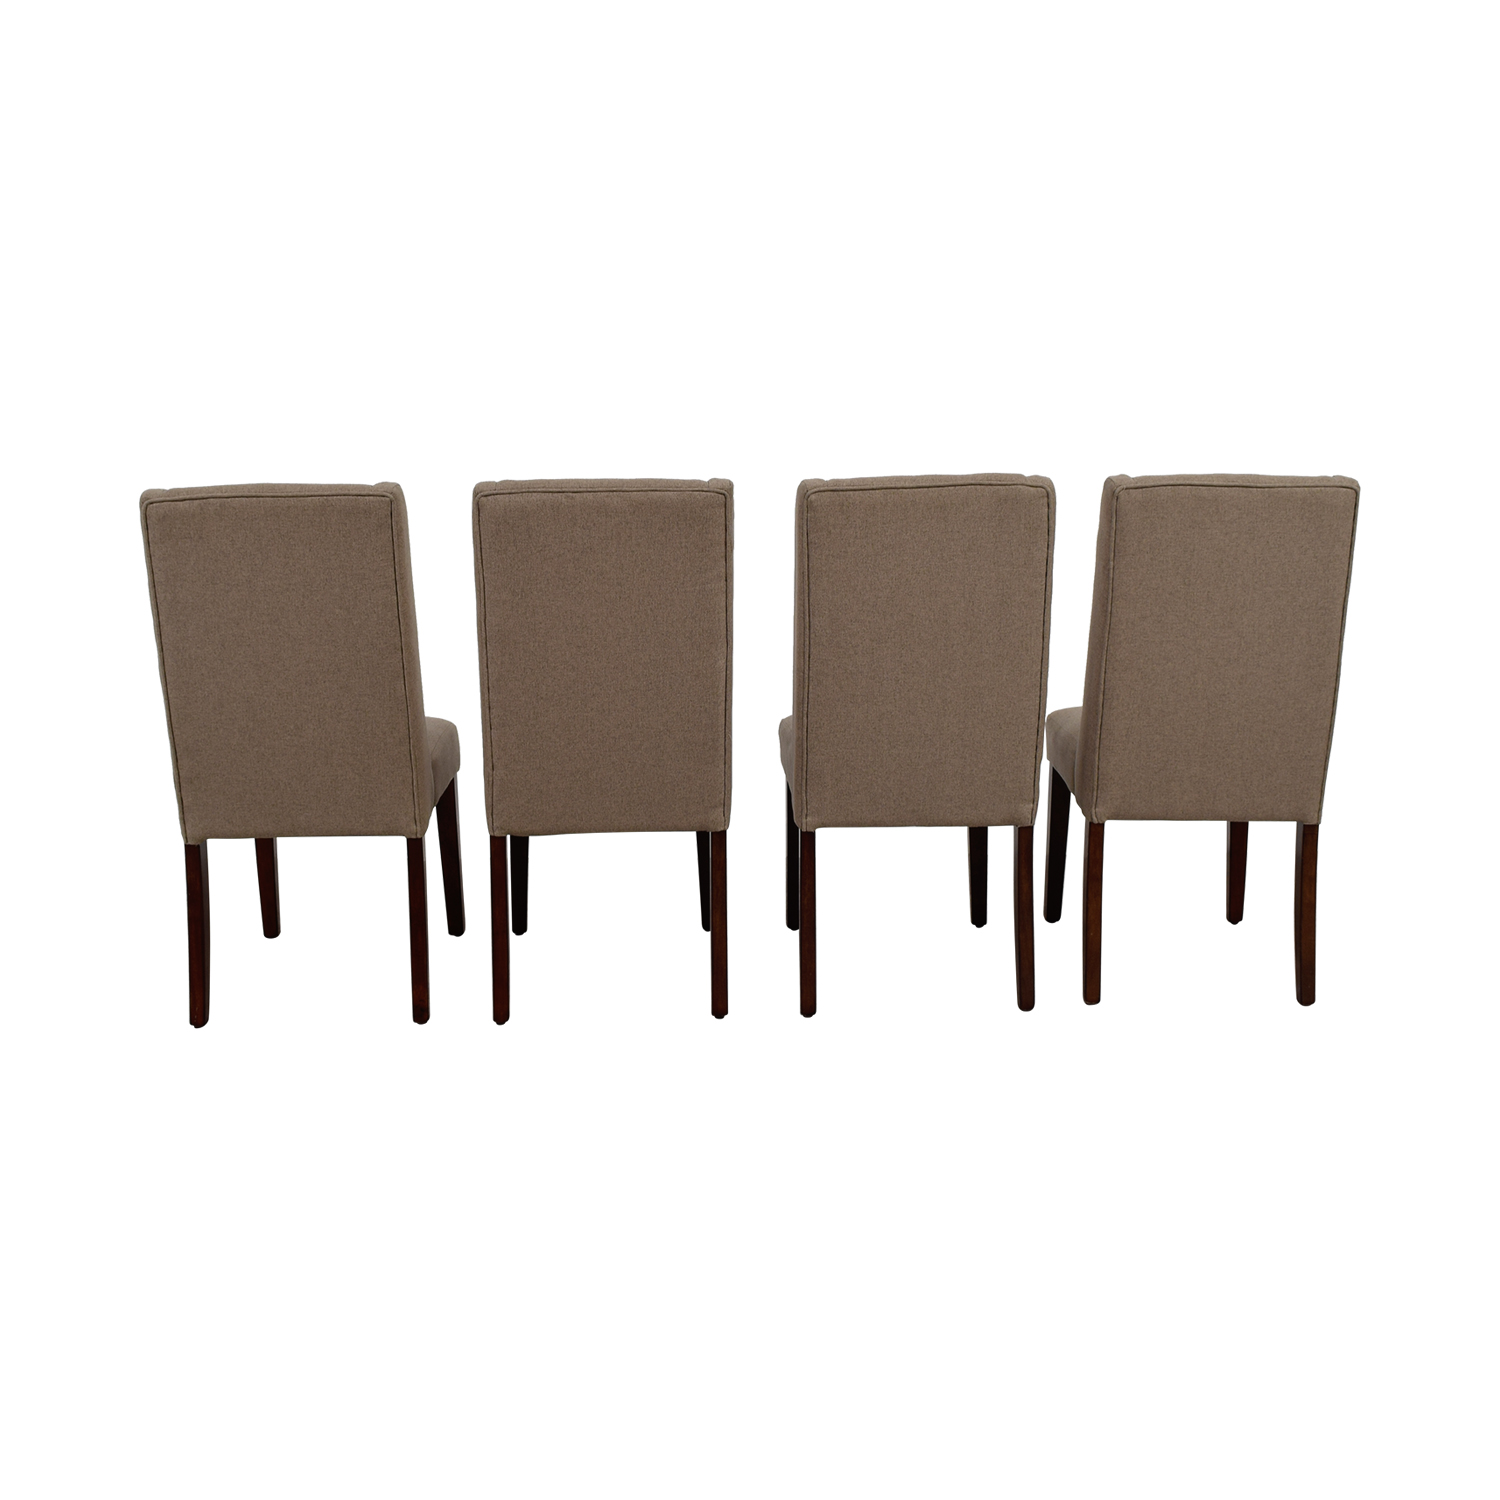 Darby Home Co Darby Home Co Tan Upholstered Dining Chairs used